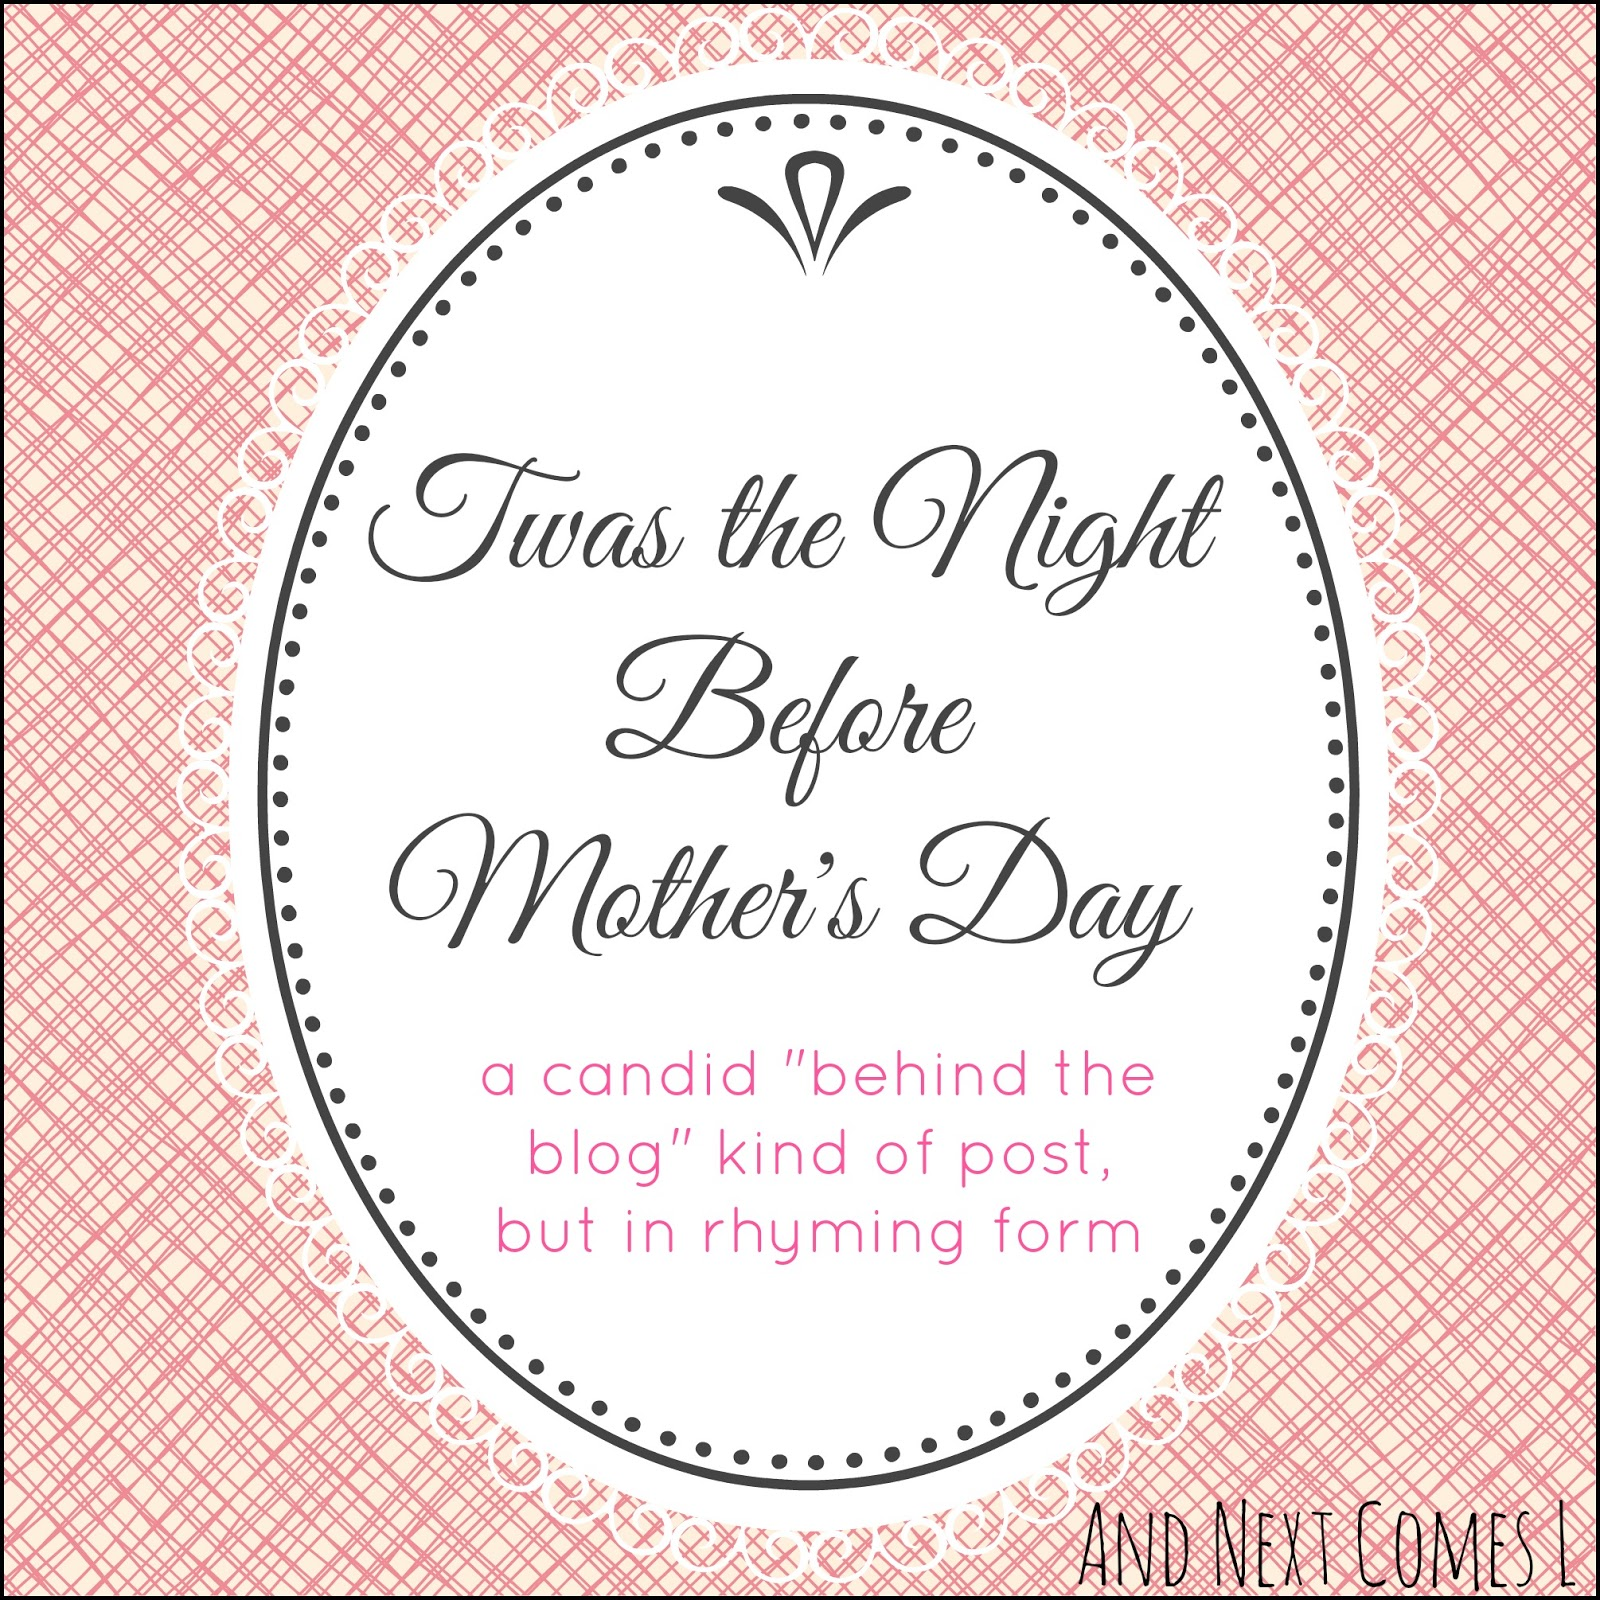 Behind the blog: Twas the Night Before Mother's Day from And Next Comes L